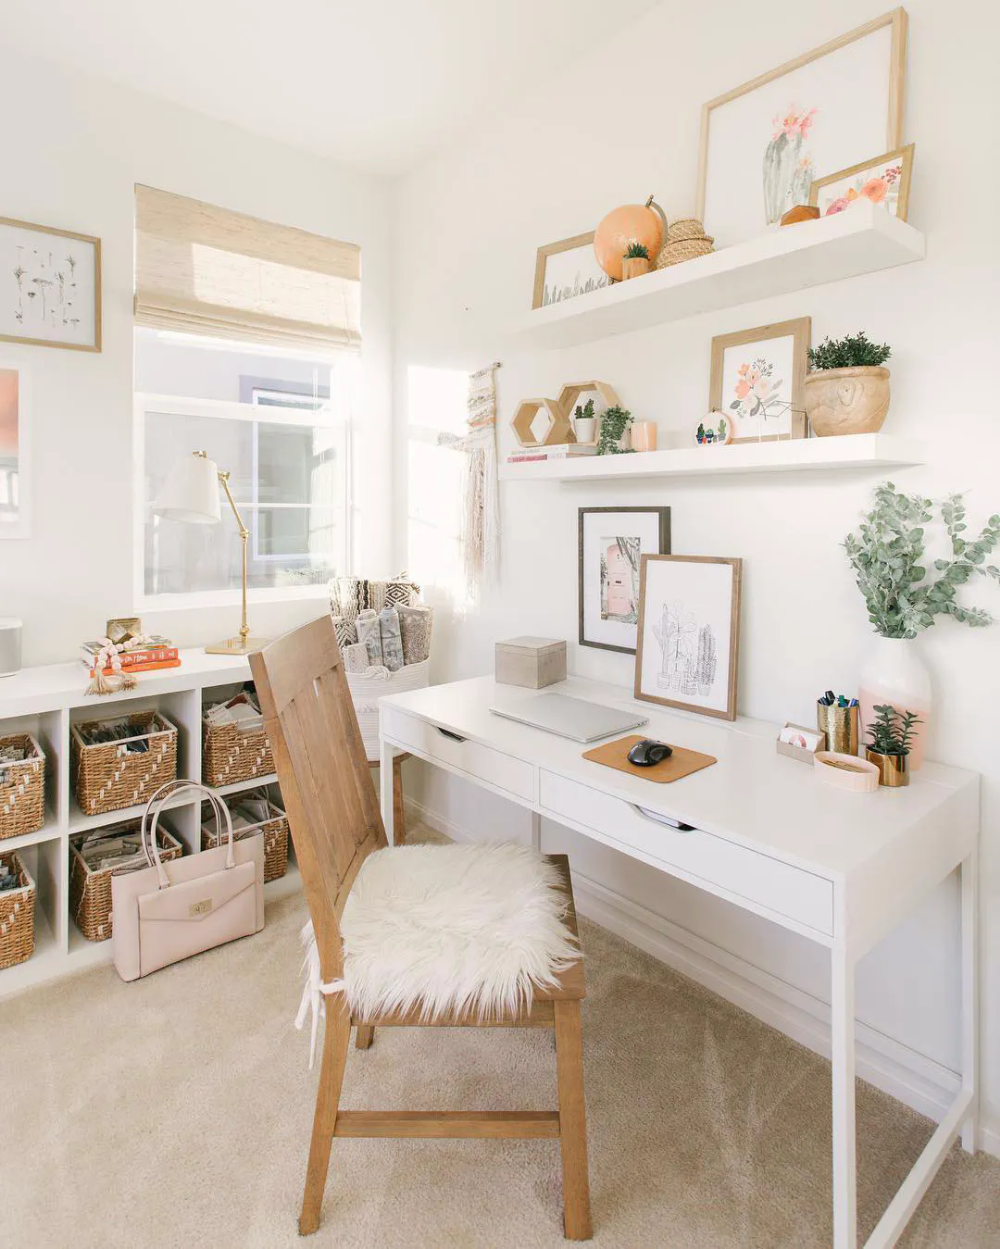 10 Homeschool Desk Ideas To Inspire Your Remote Learning Space Blinds Com In 2020 Home Office Decor Home Office Space Small Home Office